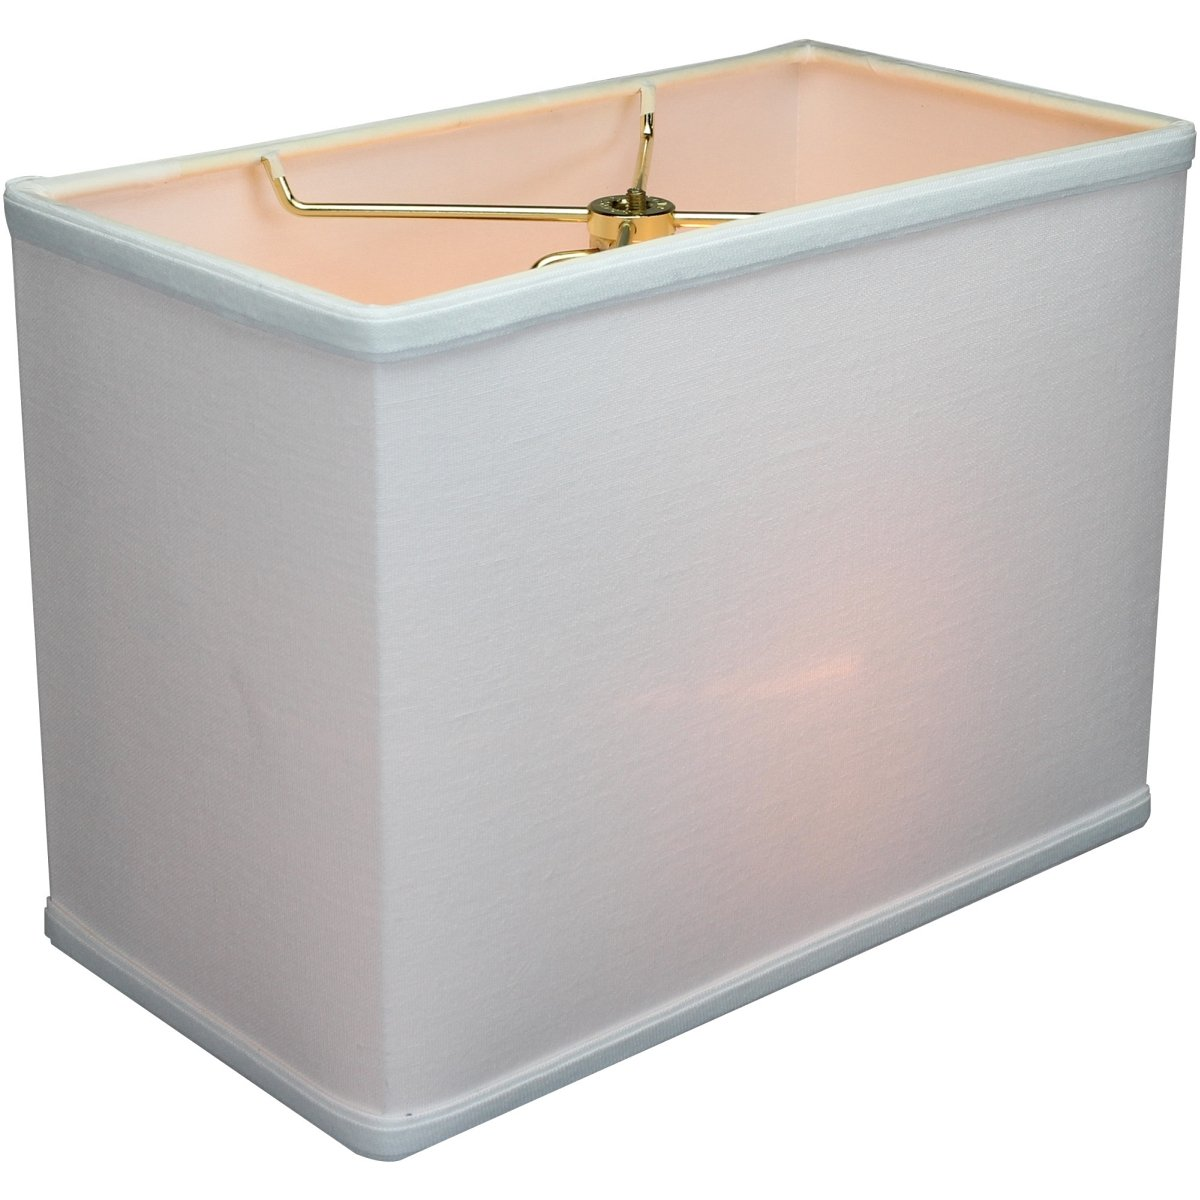 (6x12)x(6x12)x9 Rectangular Drum Lampshade White with Brass Spider fitter By Home Concept - Perfect for table and Desk lamps - Medium, White